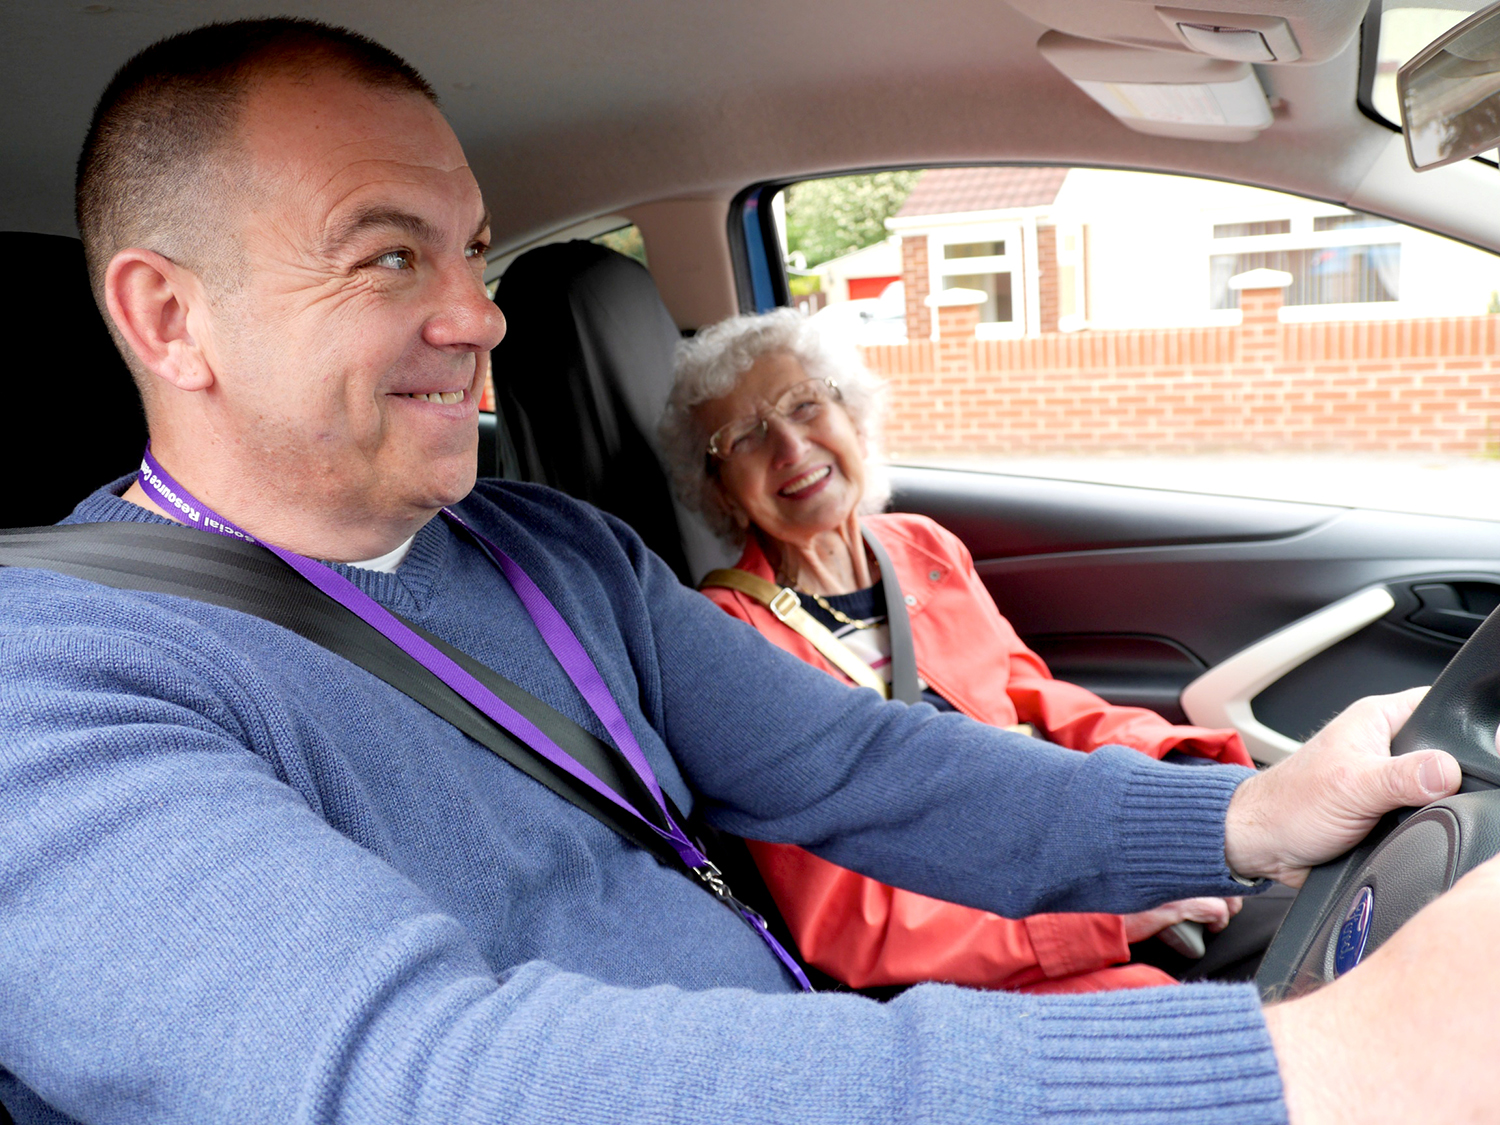 Volunteer Drivers Needed in the Town to Start SDNA